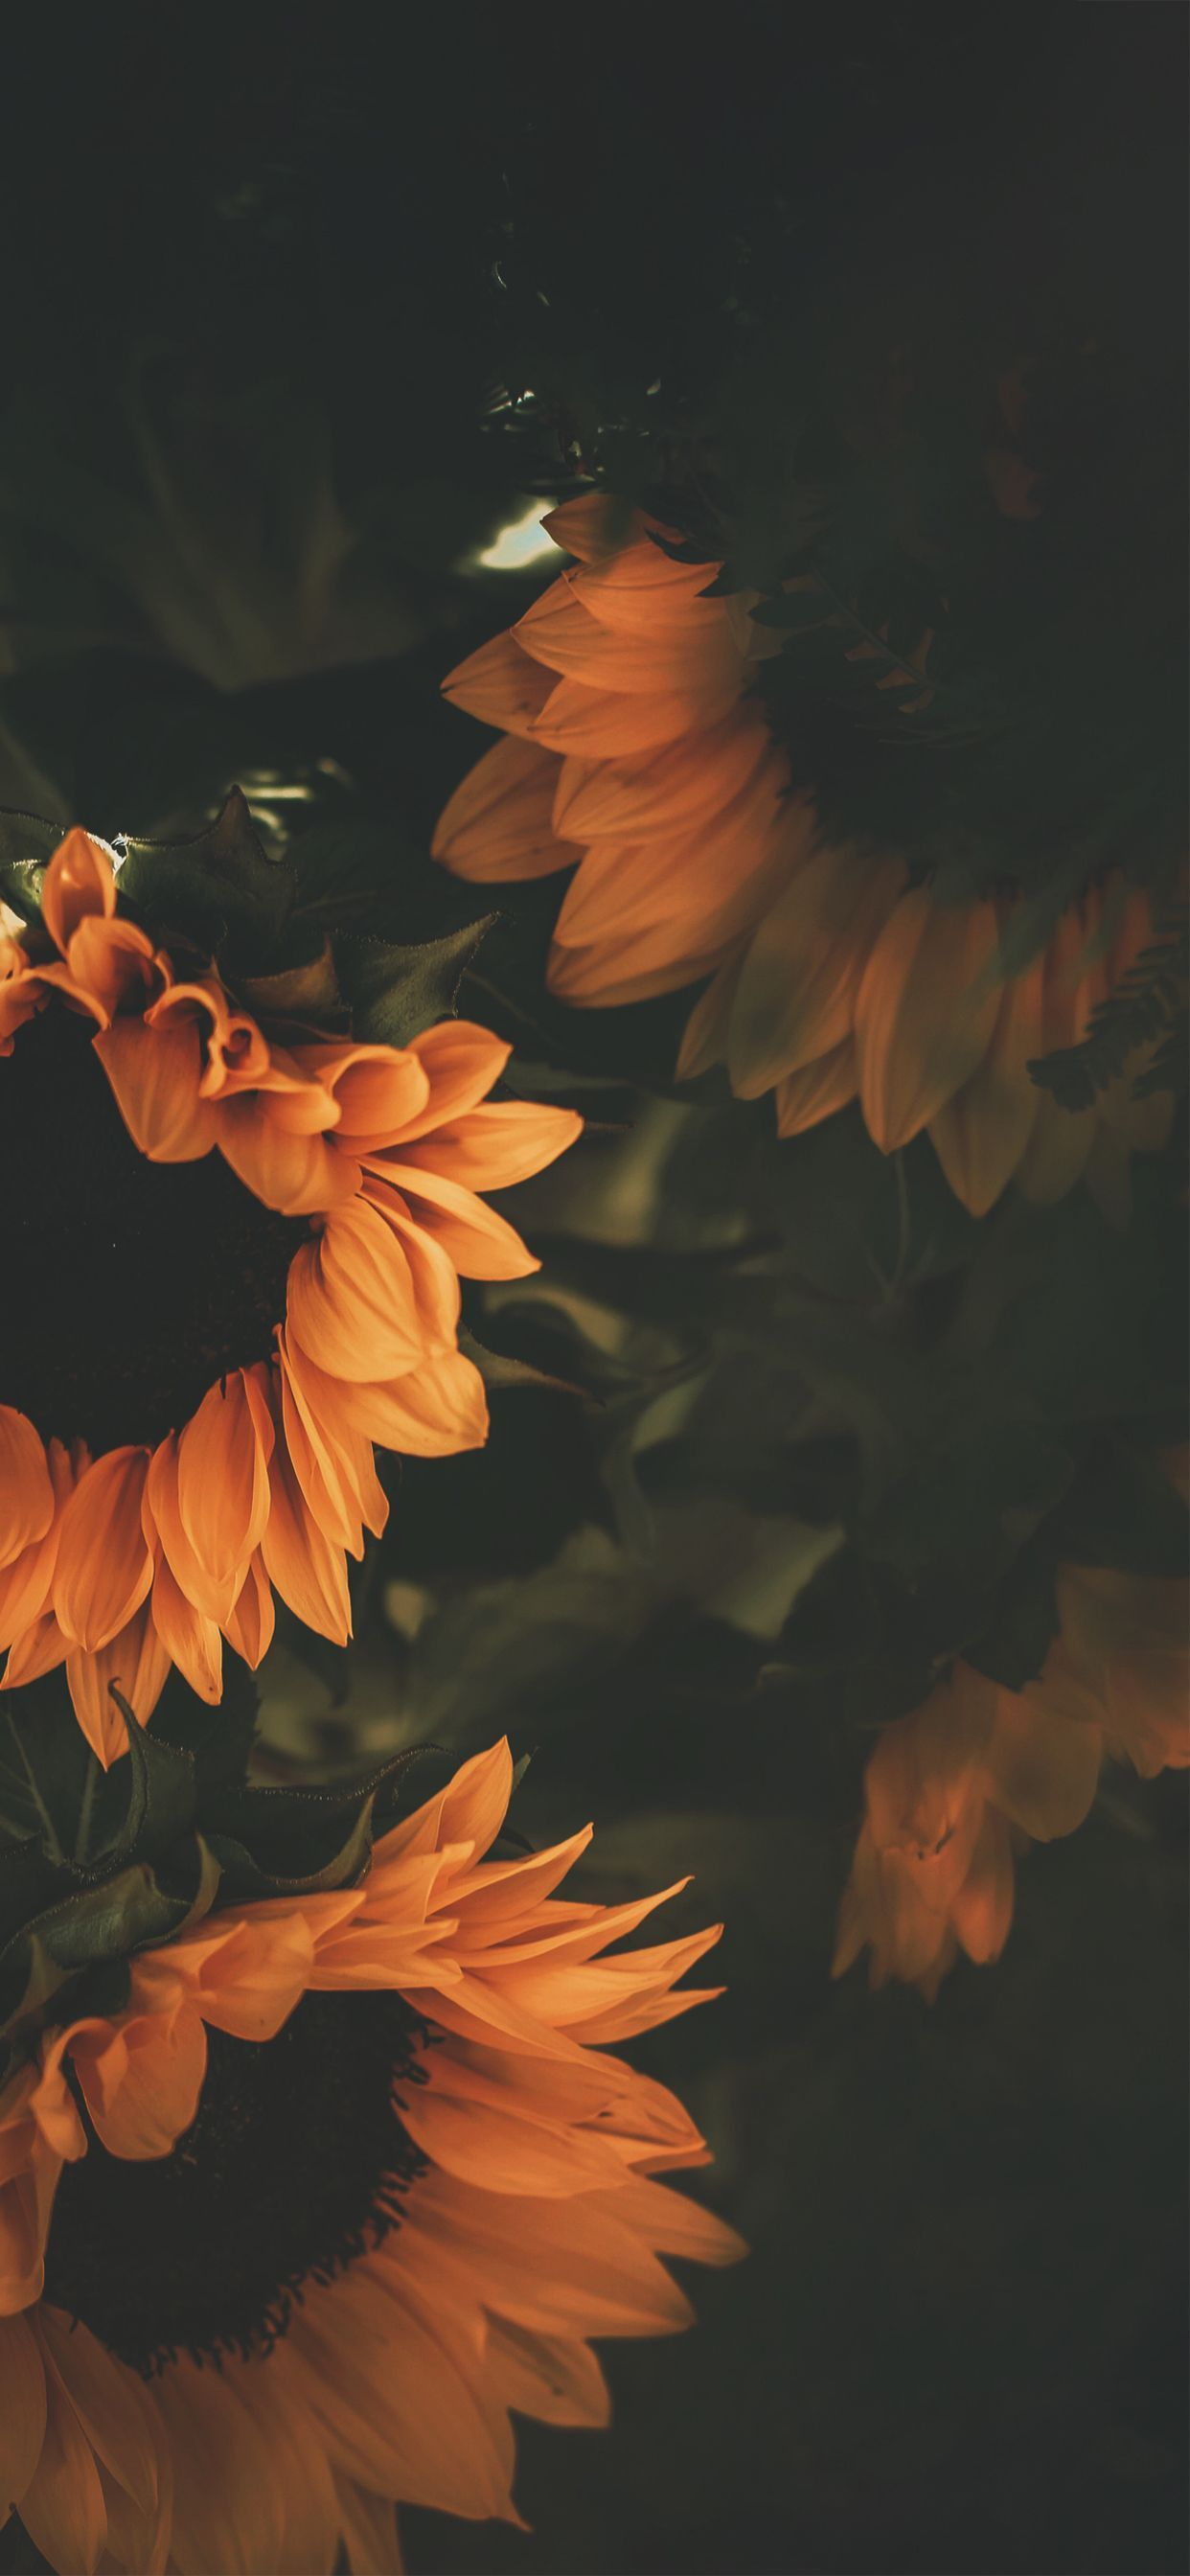 Iphone Xs Max Iphonexsmax Iphone8 Sunflower Iphone Wallpaper Sunflower Wallpaper Lock Screen Wallpaper Iphone